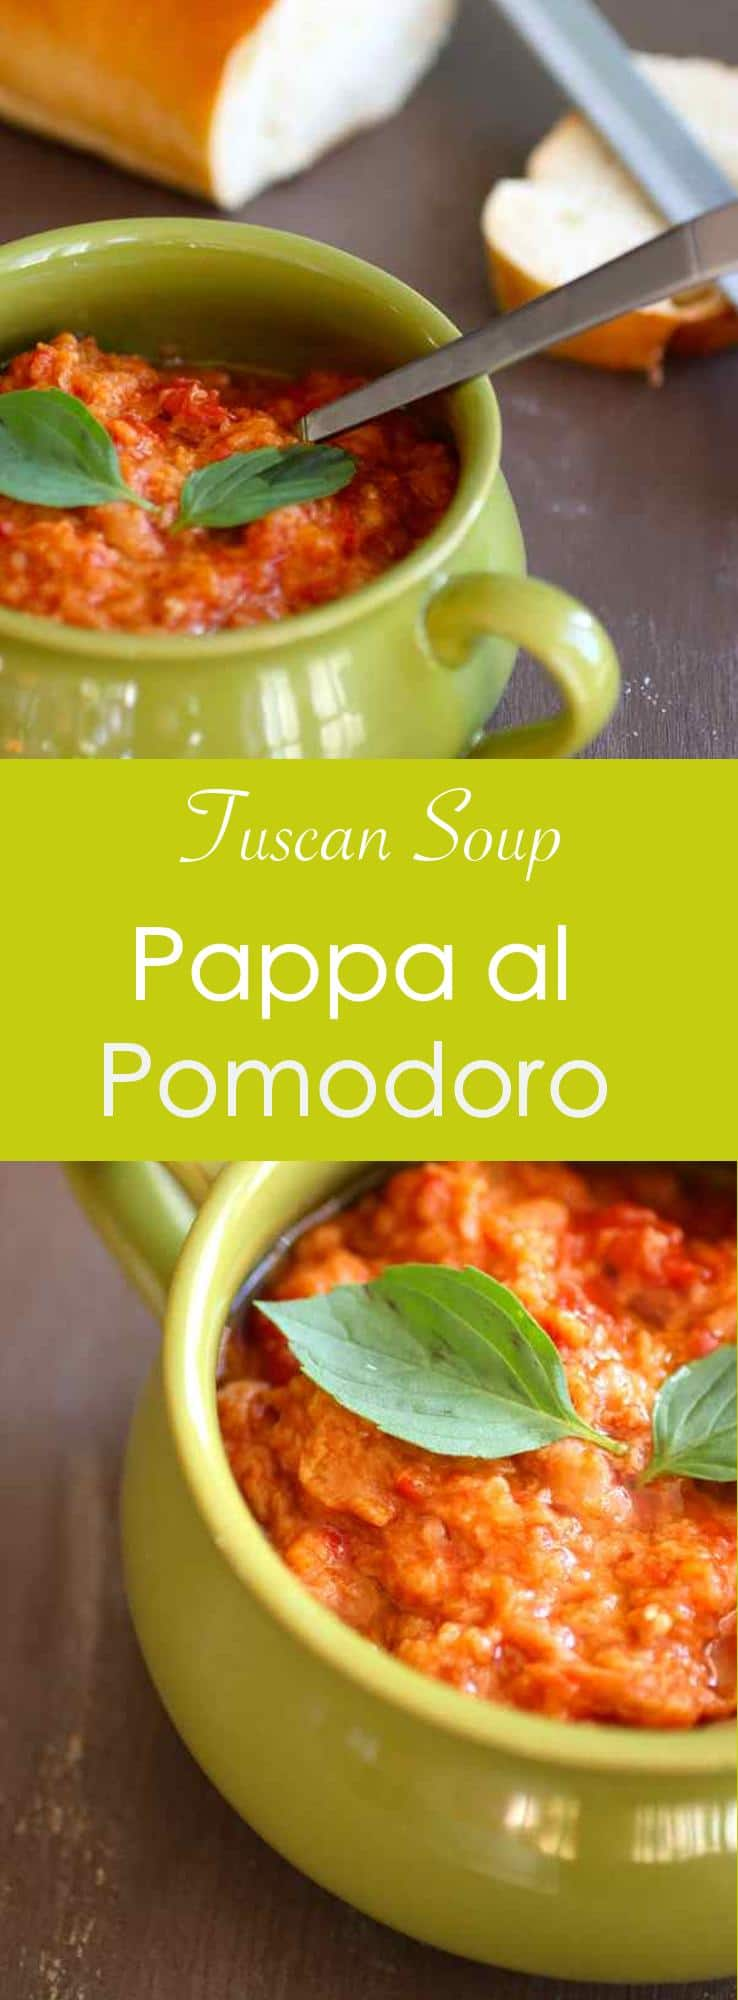 Pappa al pomodoro is a traditional Tuscan thick soup prepared with ripe tomatoes, Tuscan bread and basil.